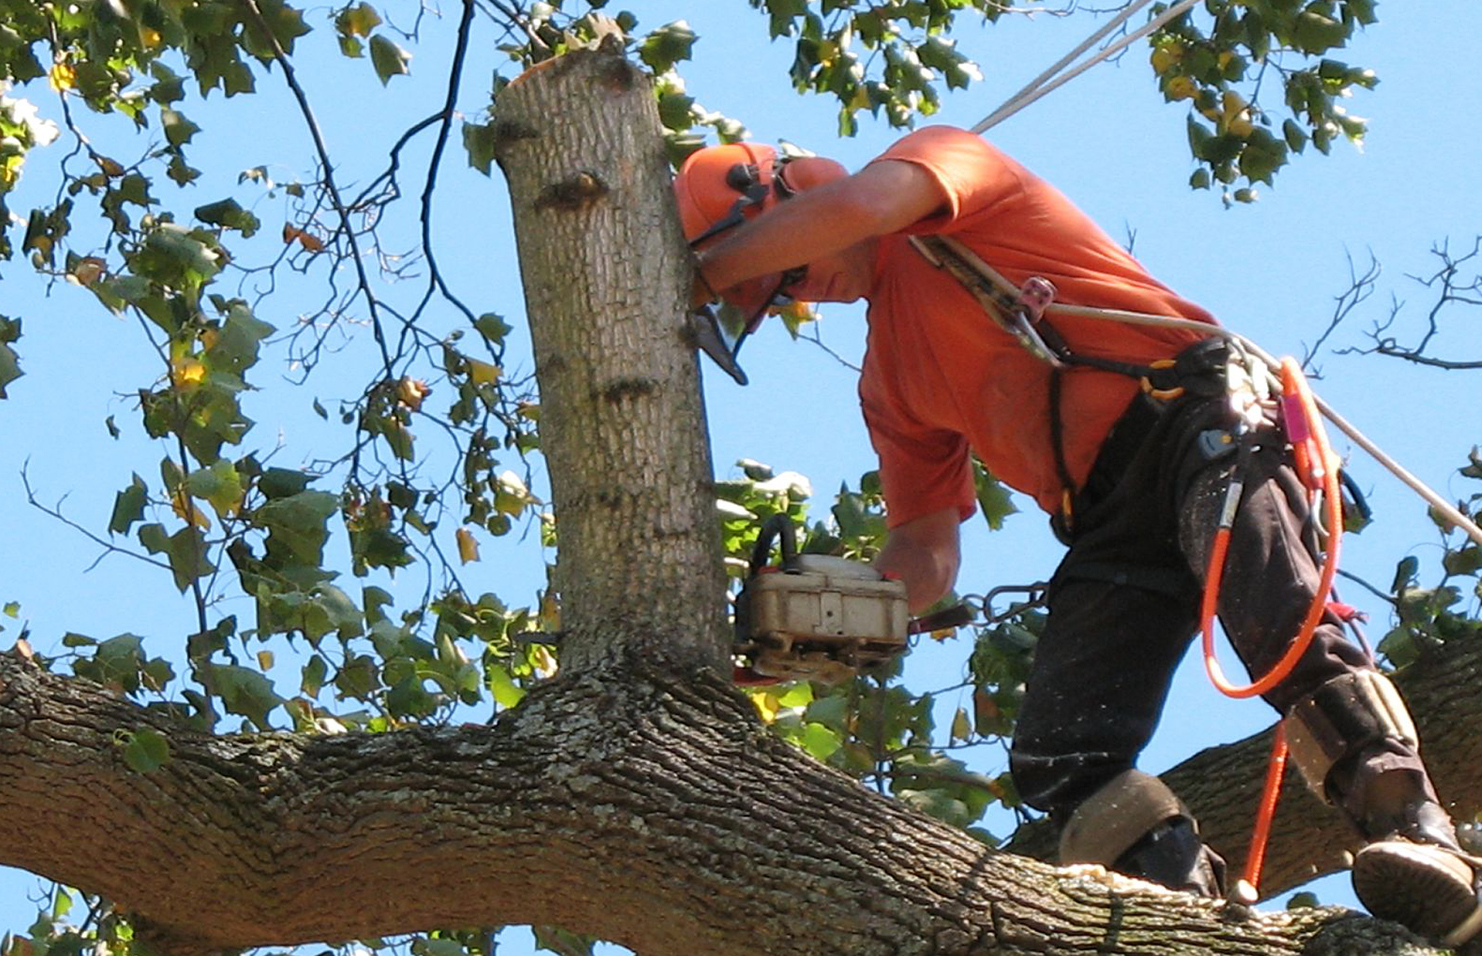 Tree Servicing Tips Everyone Should Keep in Mind